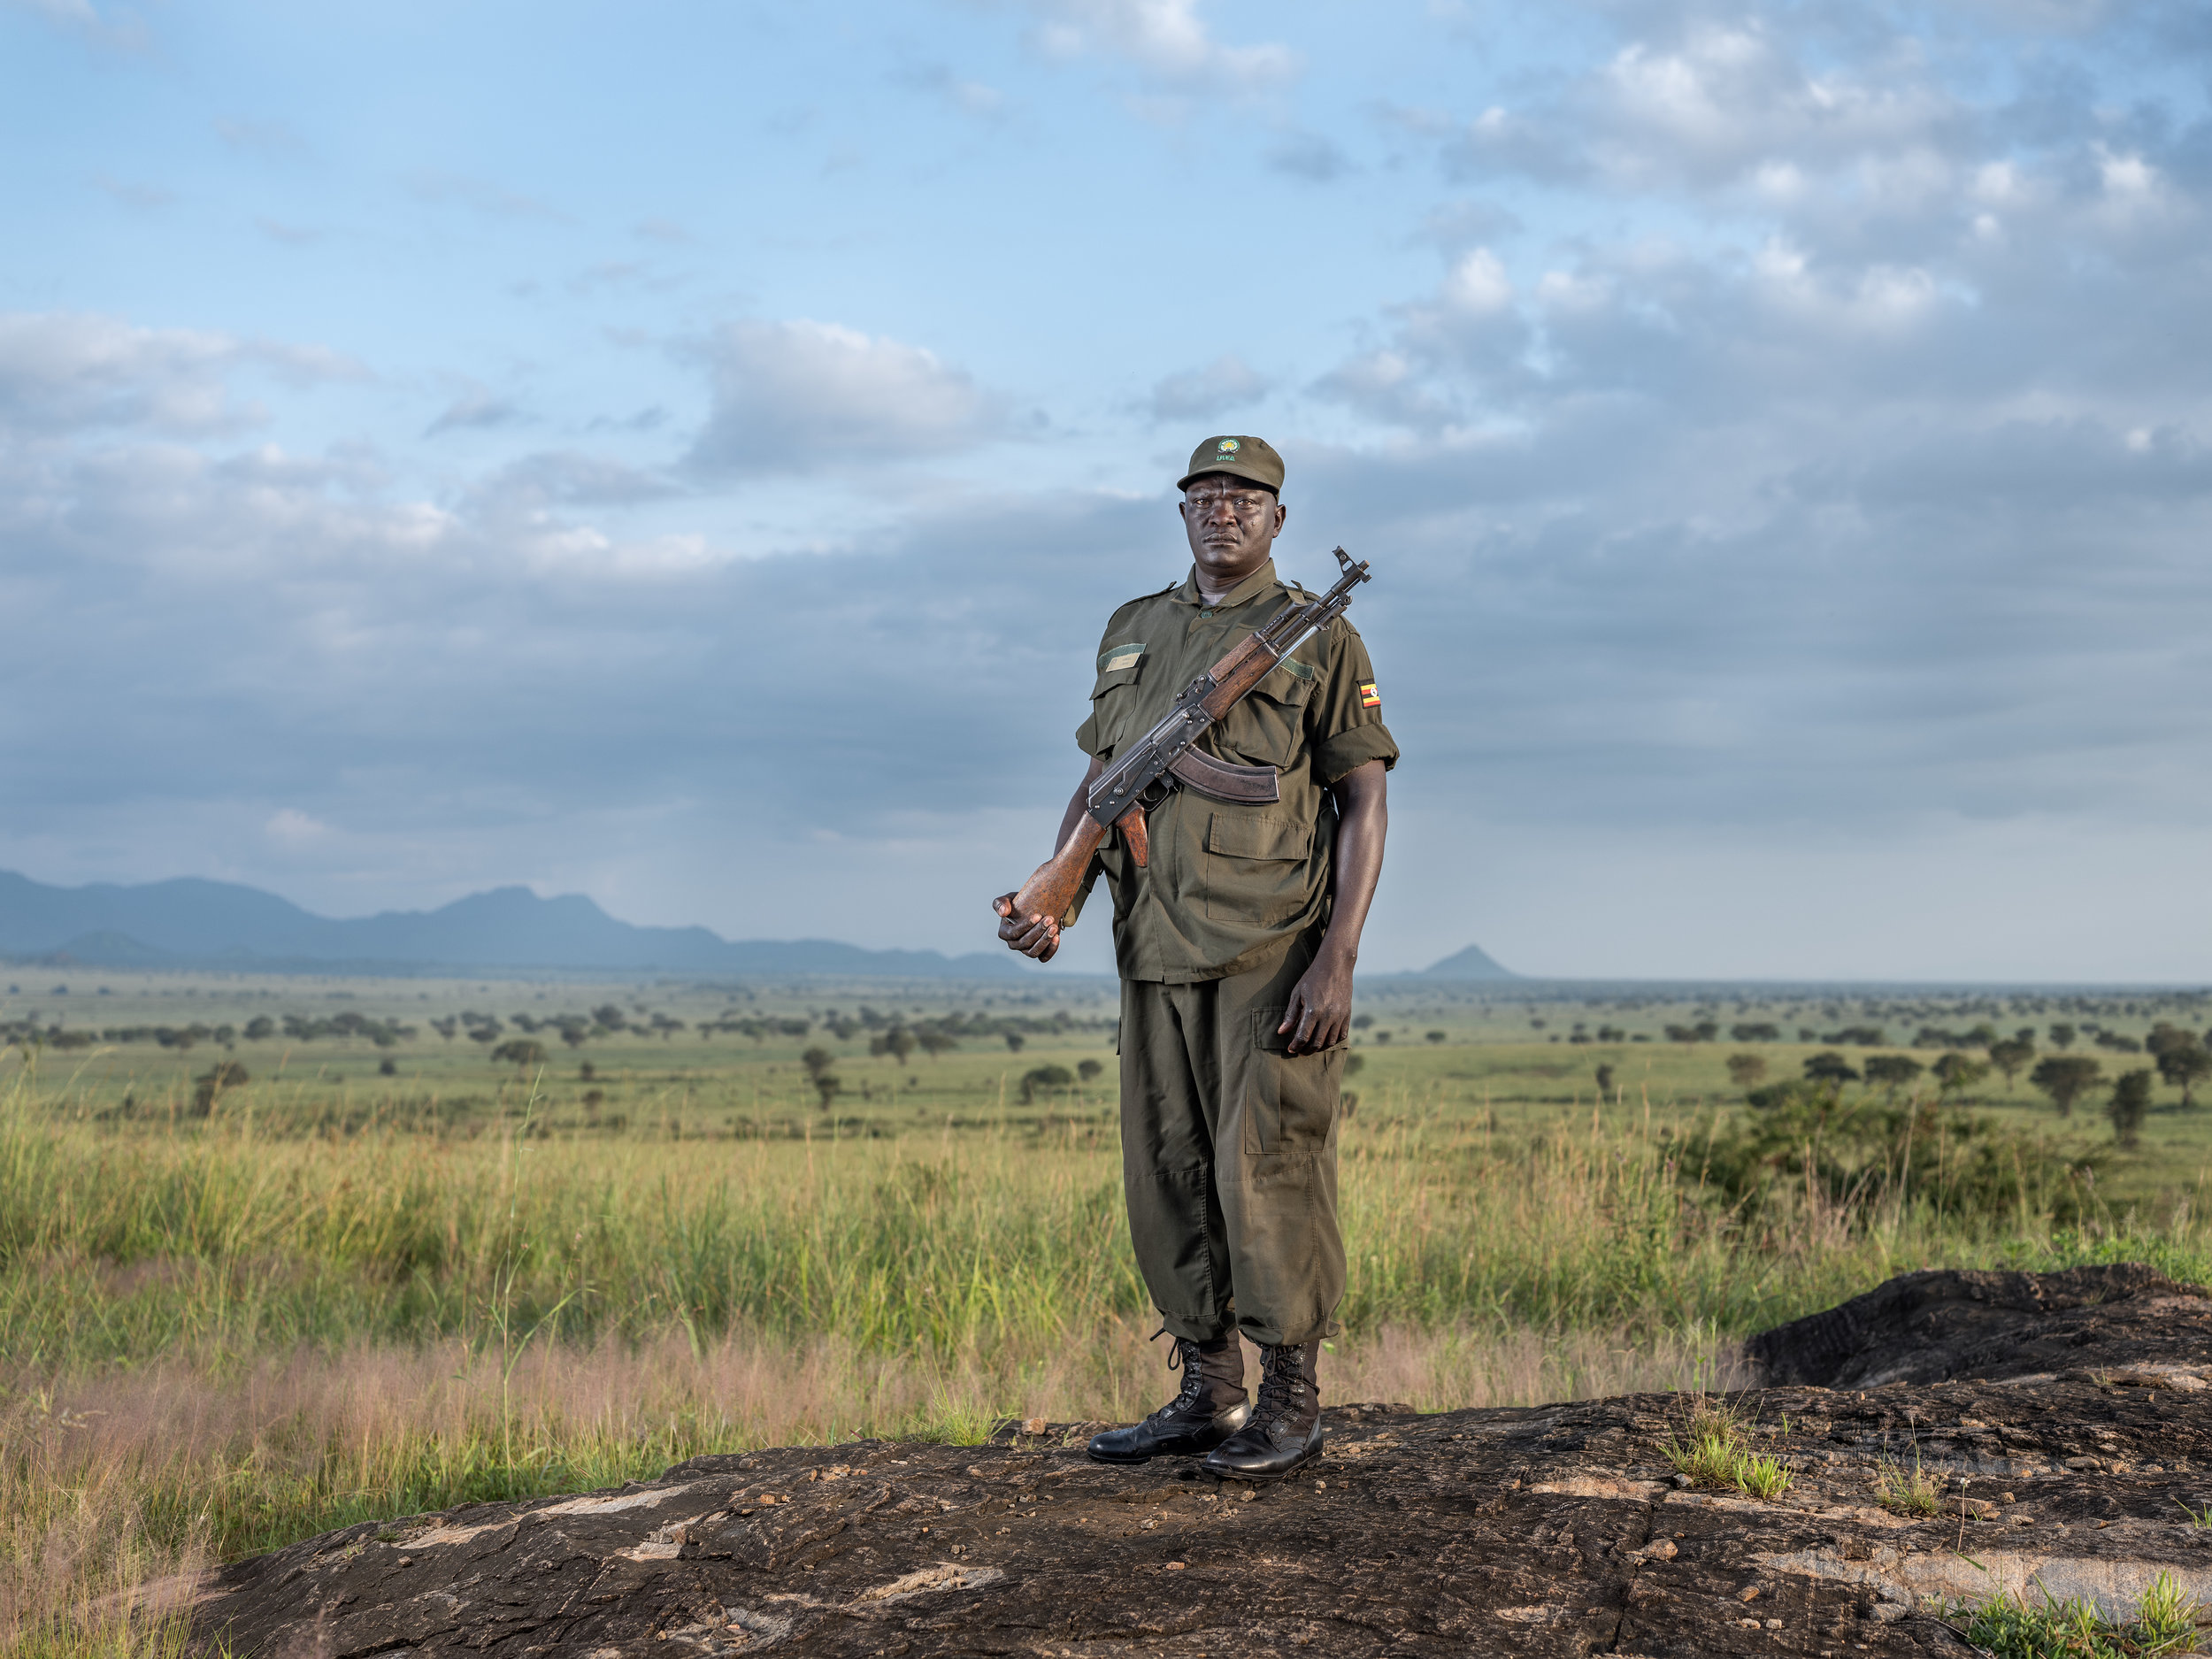 Samuel Loware in front of the mountains of South Sudan